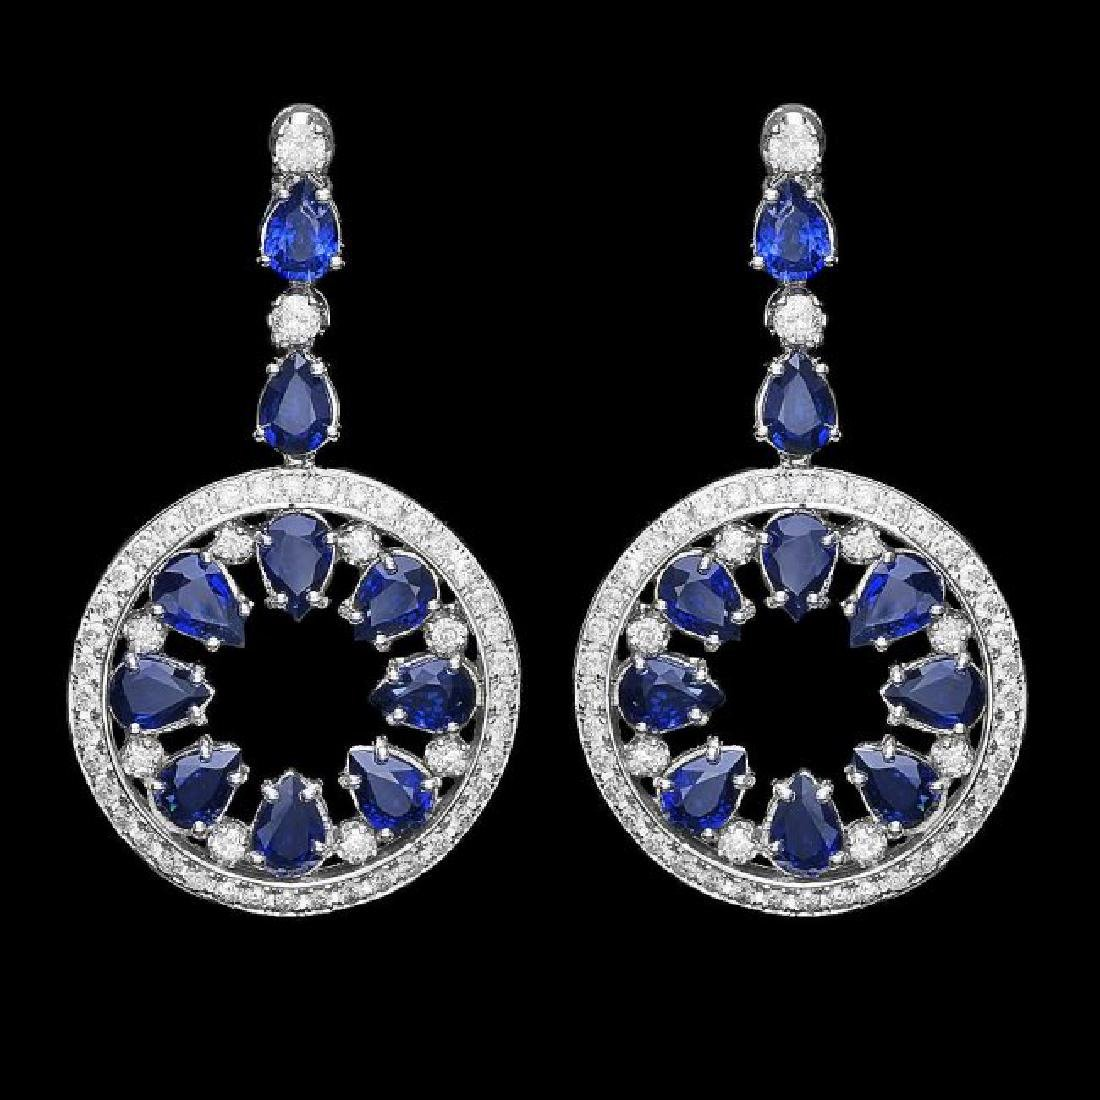 14k Gold 16ct Sapphire 3.50ct Diamond Earrings